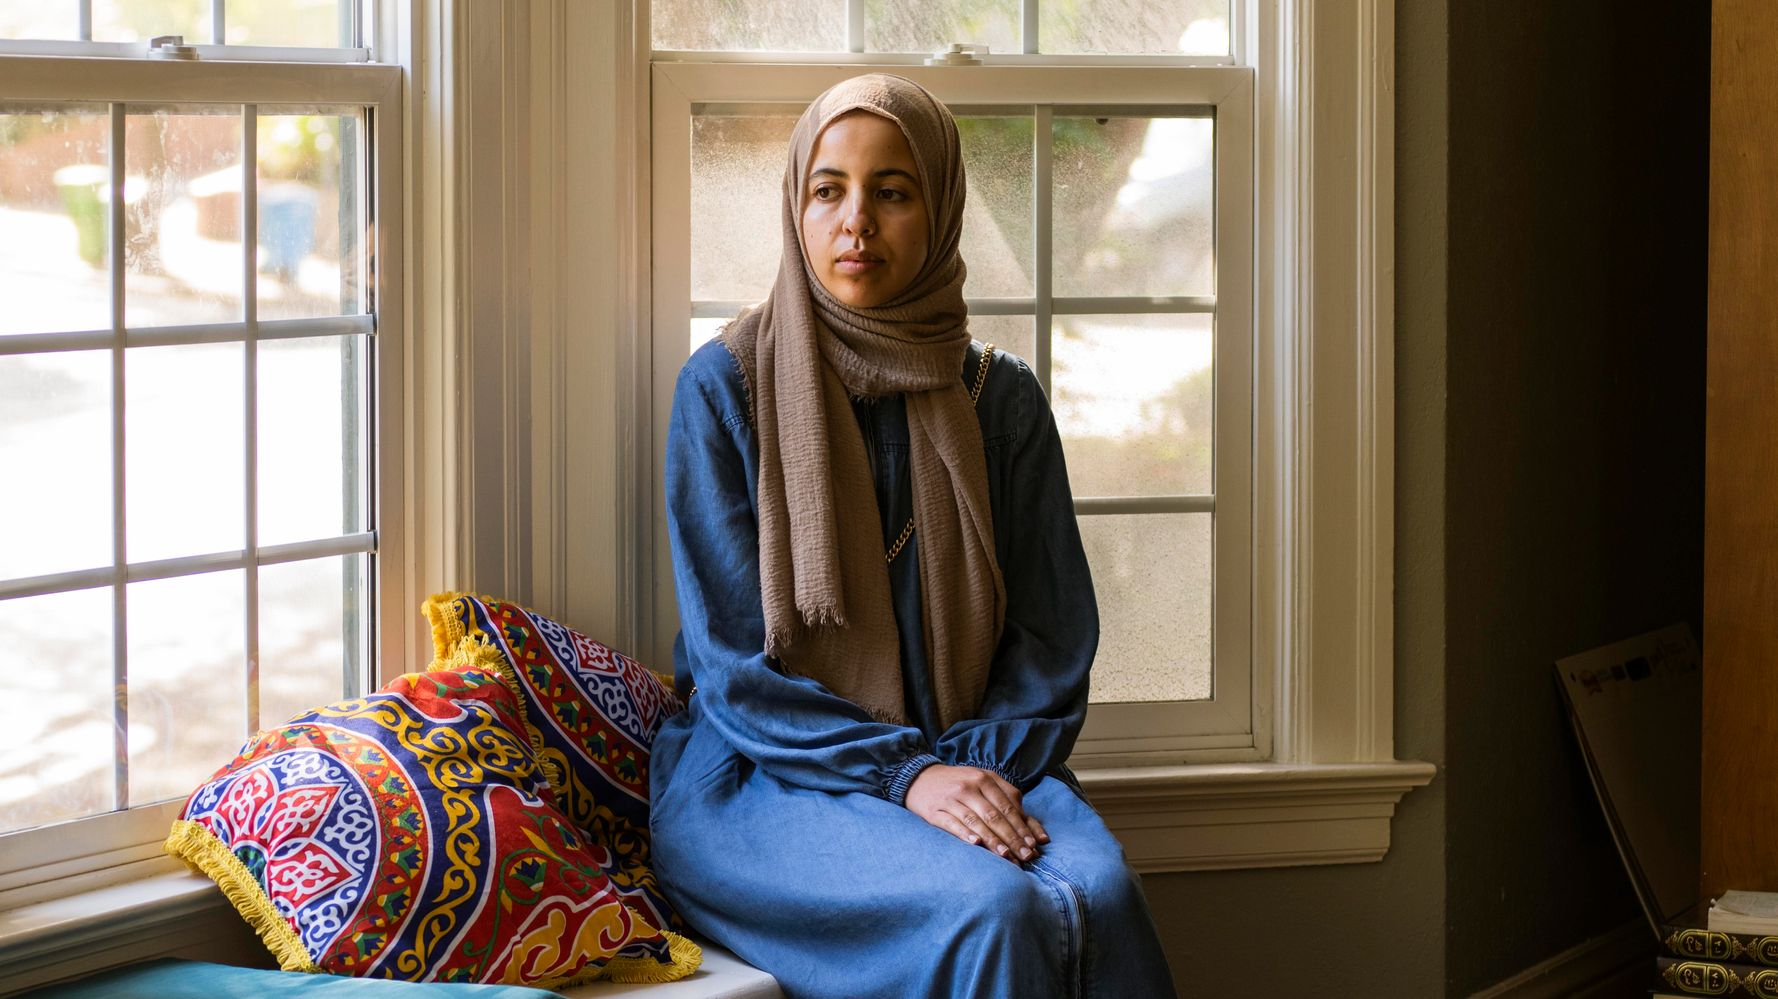 Muslim Survivors Of Domestic Violence Need You To Listen